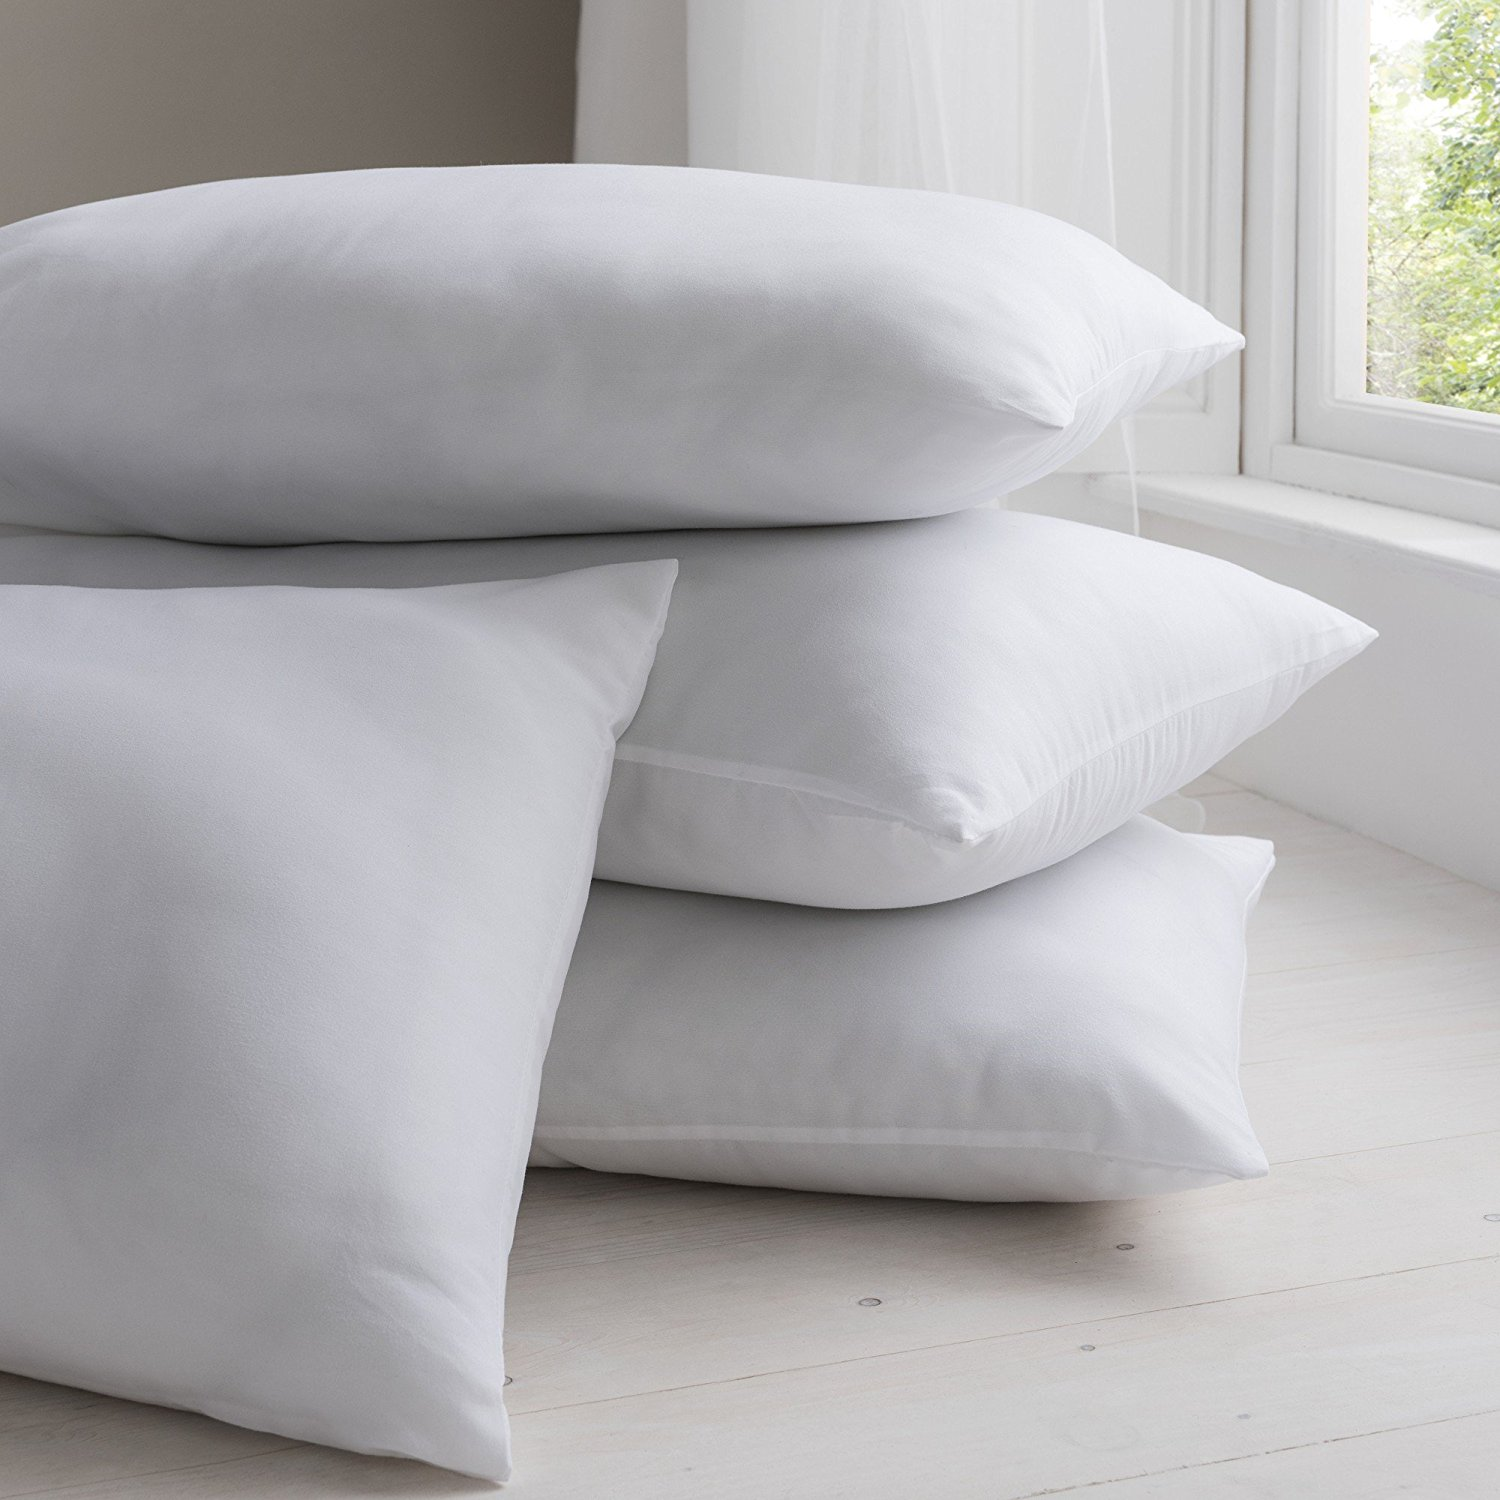 Silentnight luxury collection soft like down pillow 4 pack for Best soft down pillow